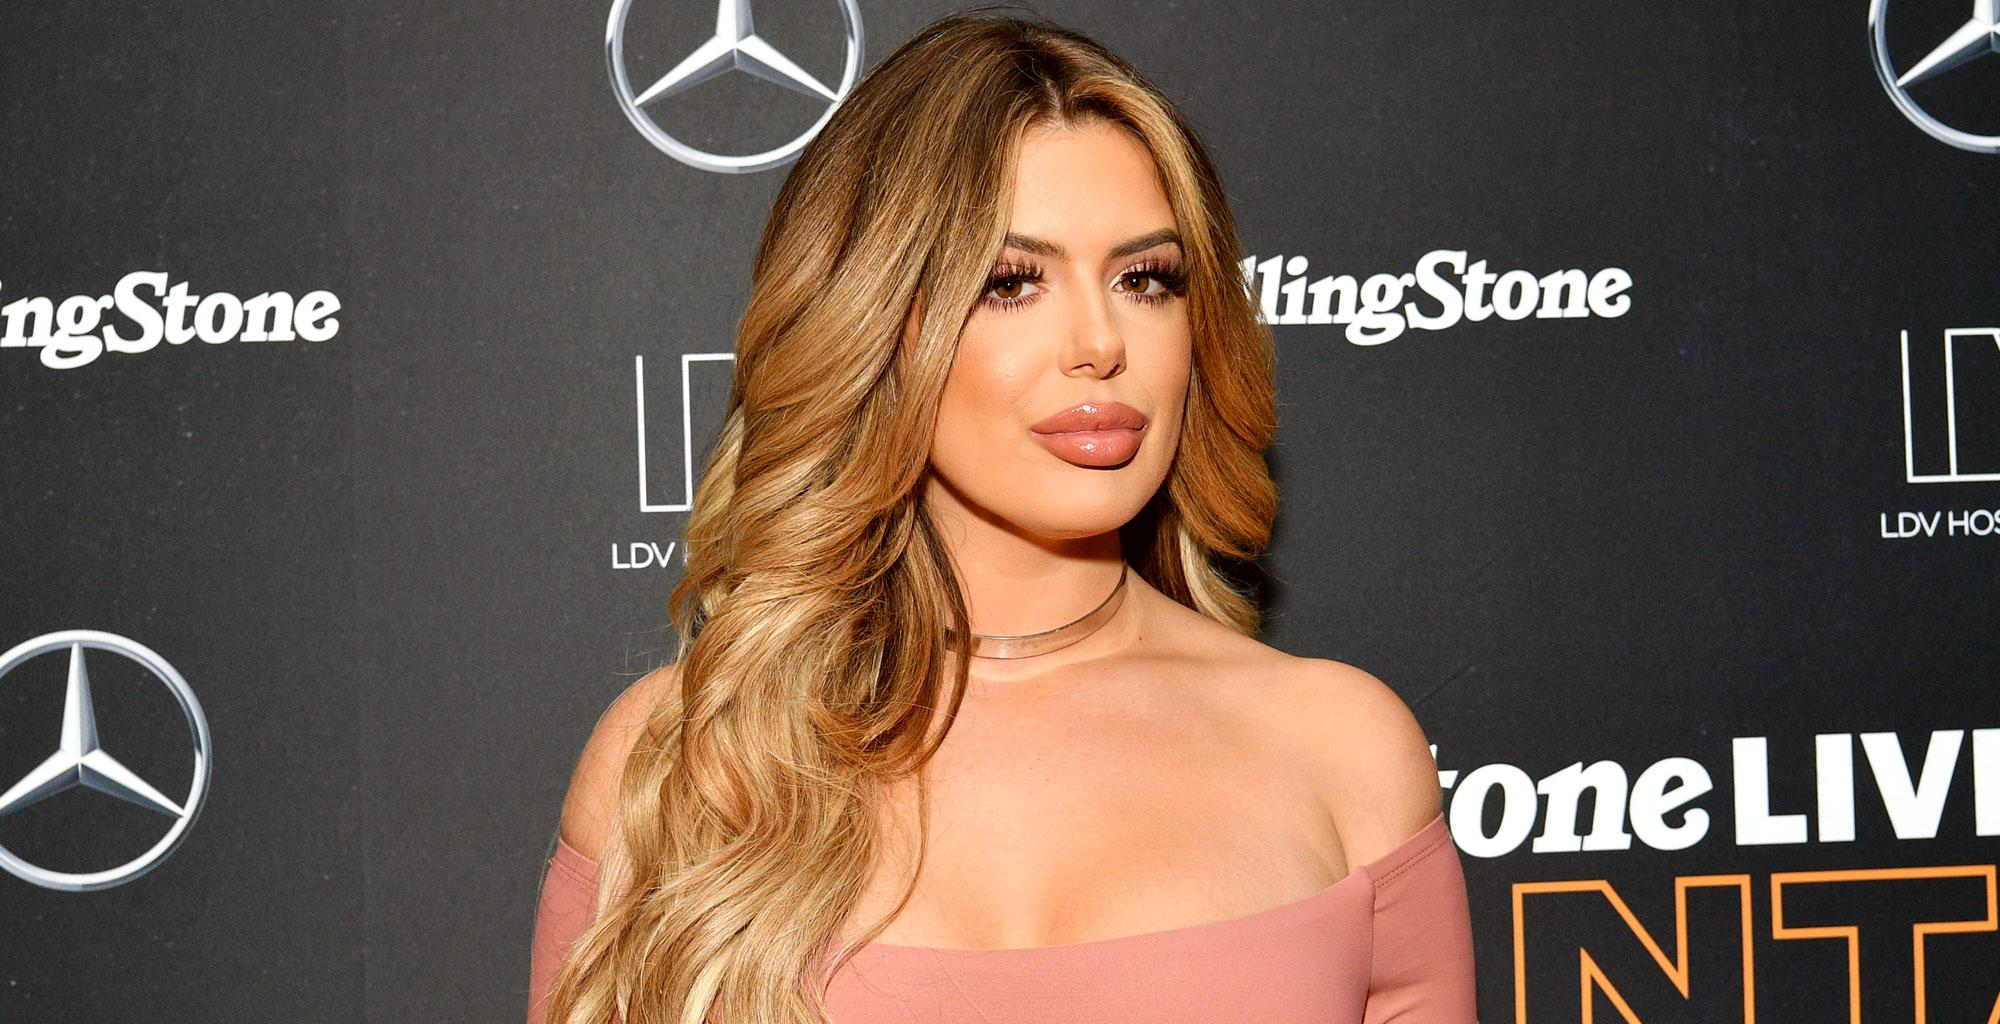 Kim Zolciak's Daughter, Brielle Biermann Shows Off Her Beach Body And Reveals Her Secret For Looking Flawless